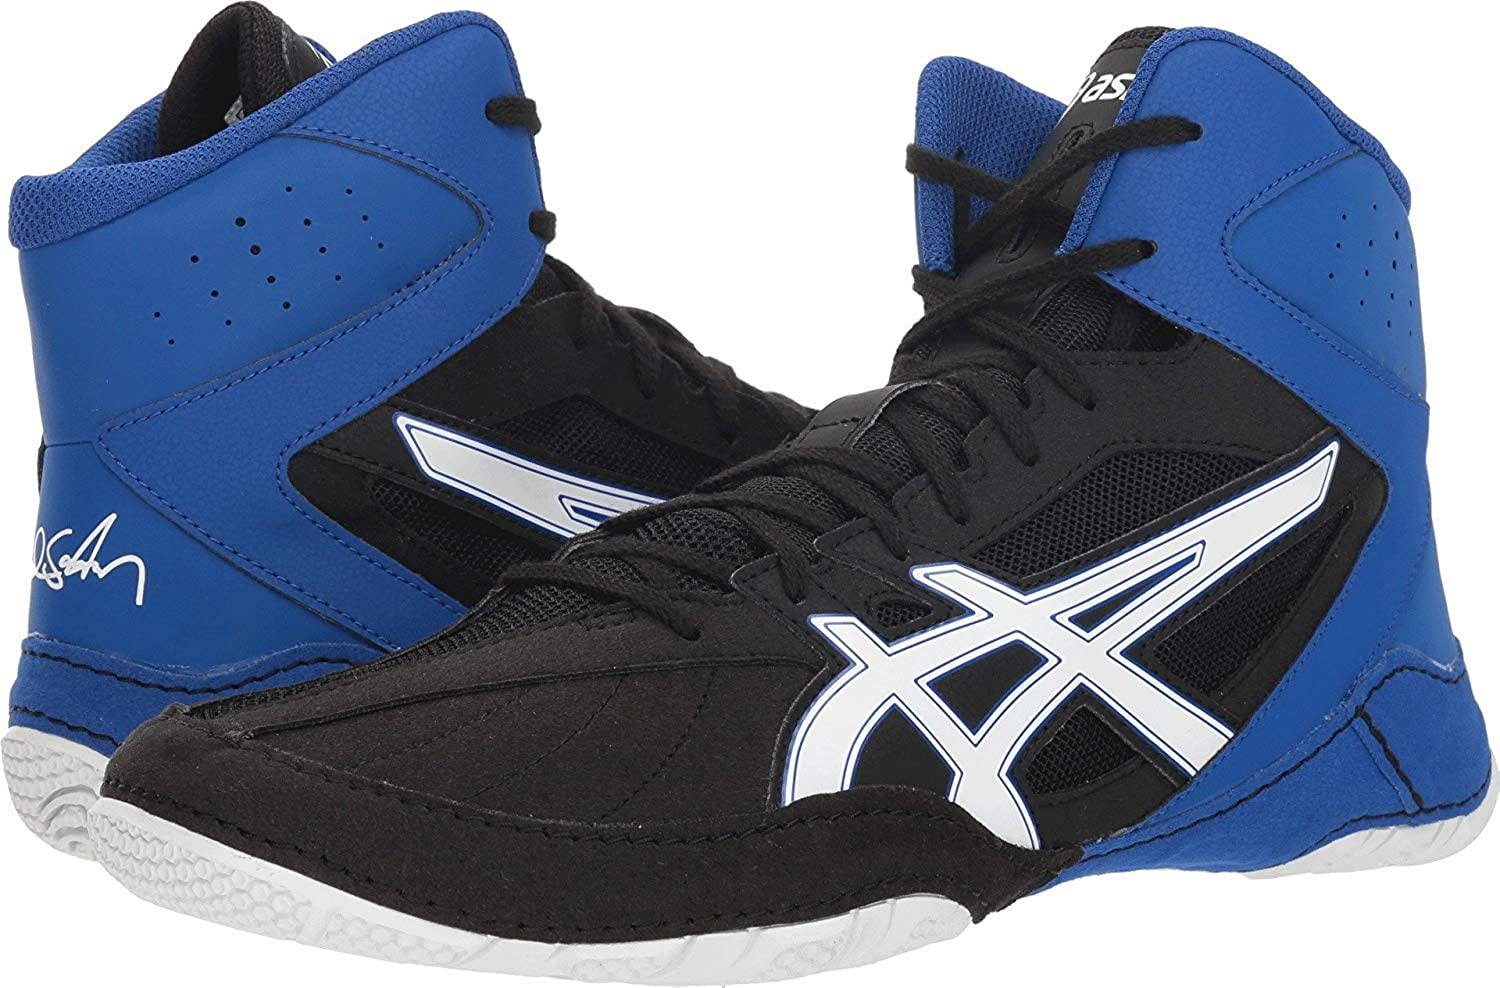 ASICS Caelr V8.0 Black/White Men's Wrestling Shoes 00-886XJKYF-SF